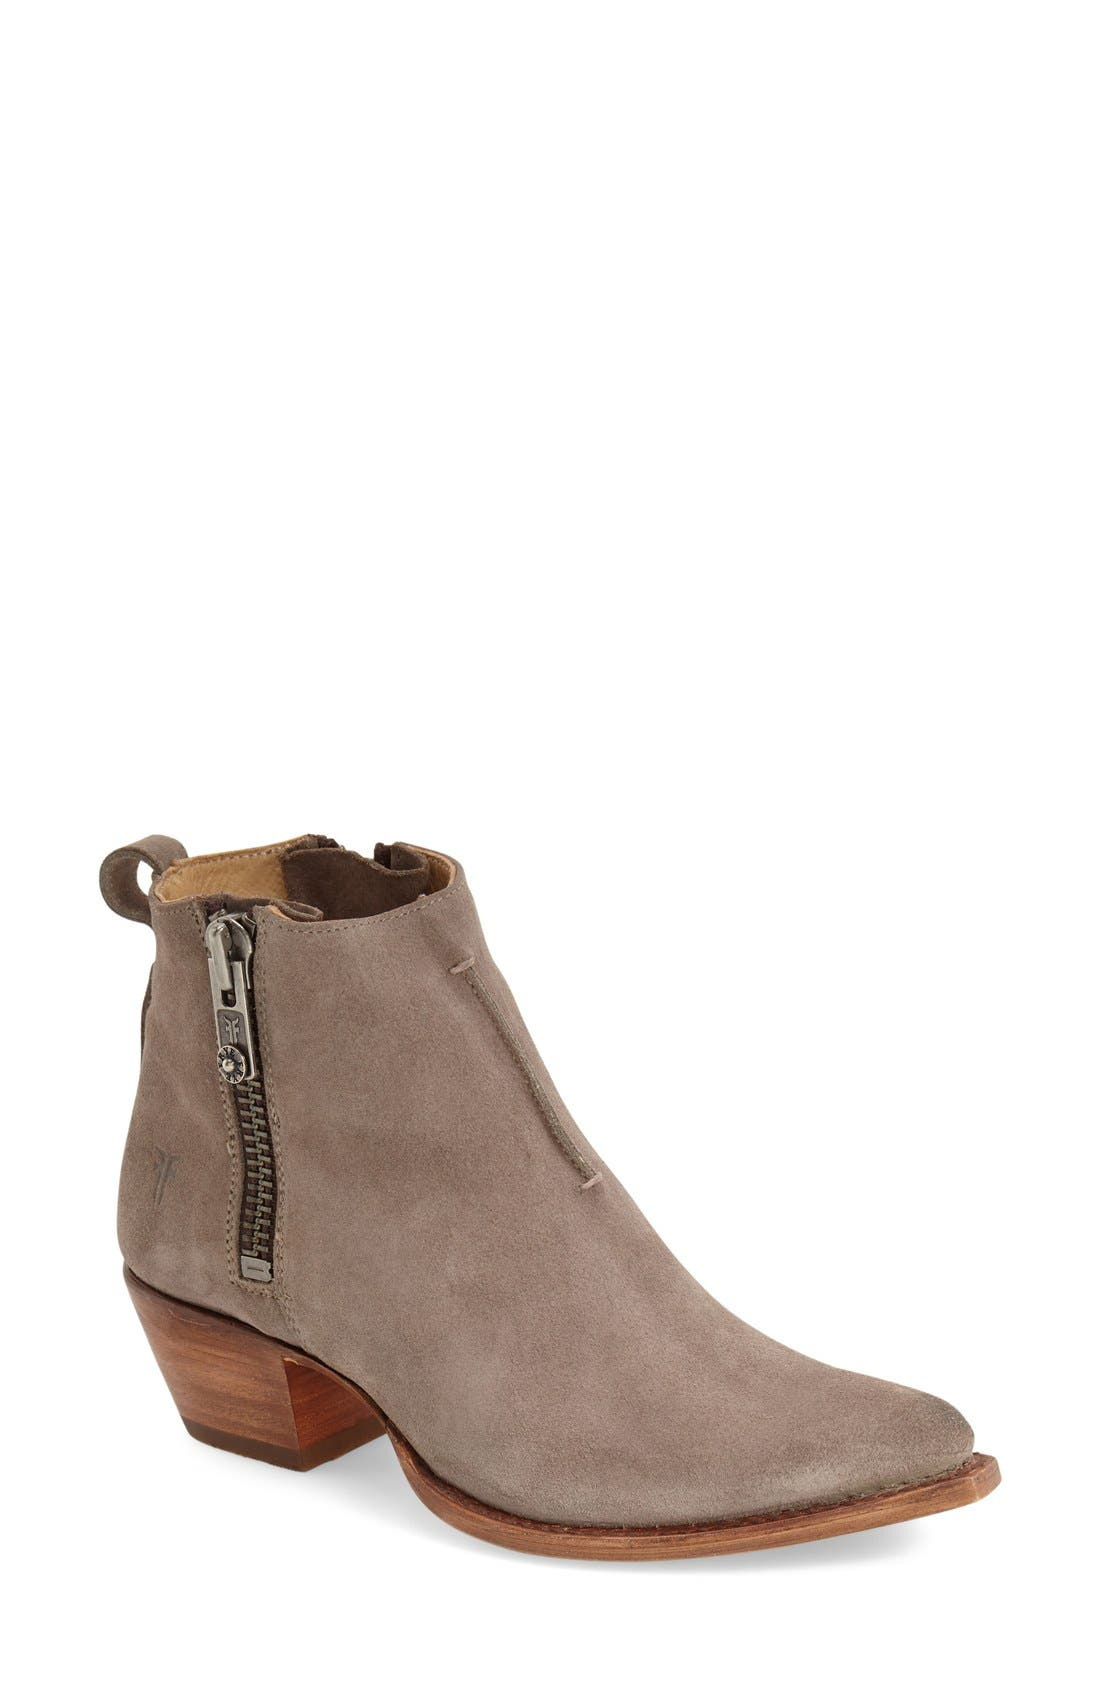 Main Image - Frye 'Sacha' Washed Leather Ankle Boot (Women)